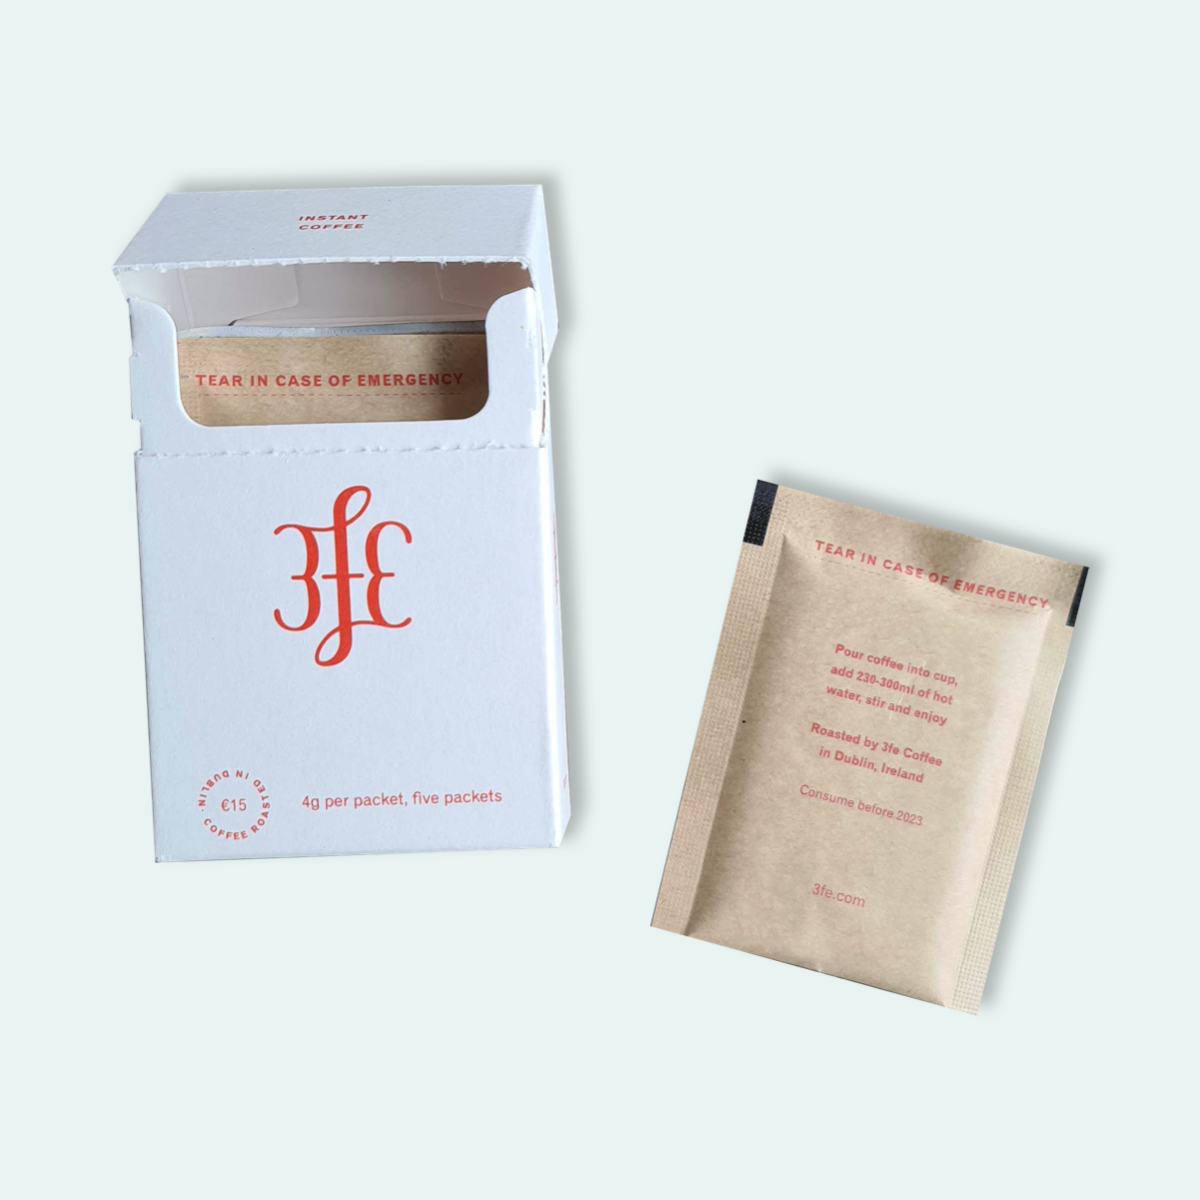 3fe Instant Coffee